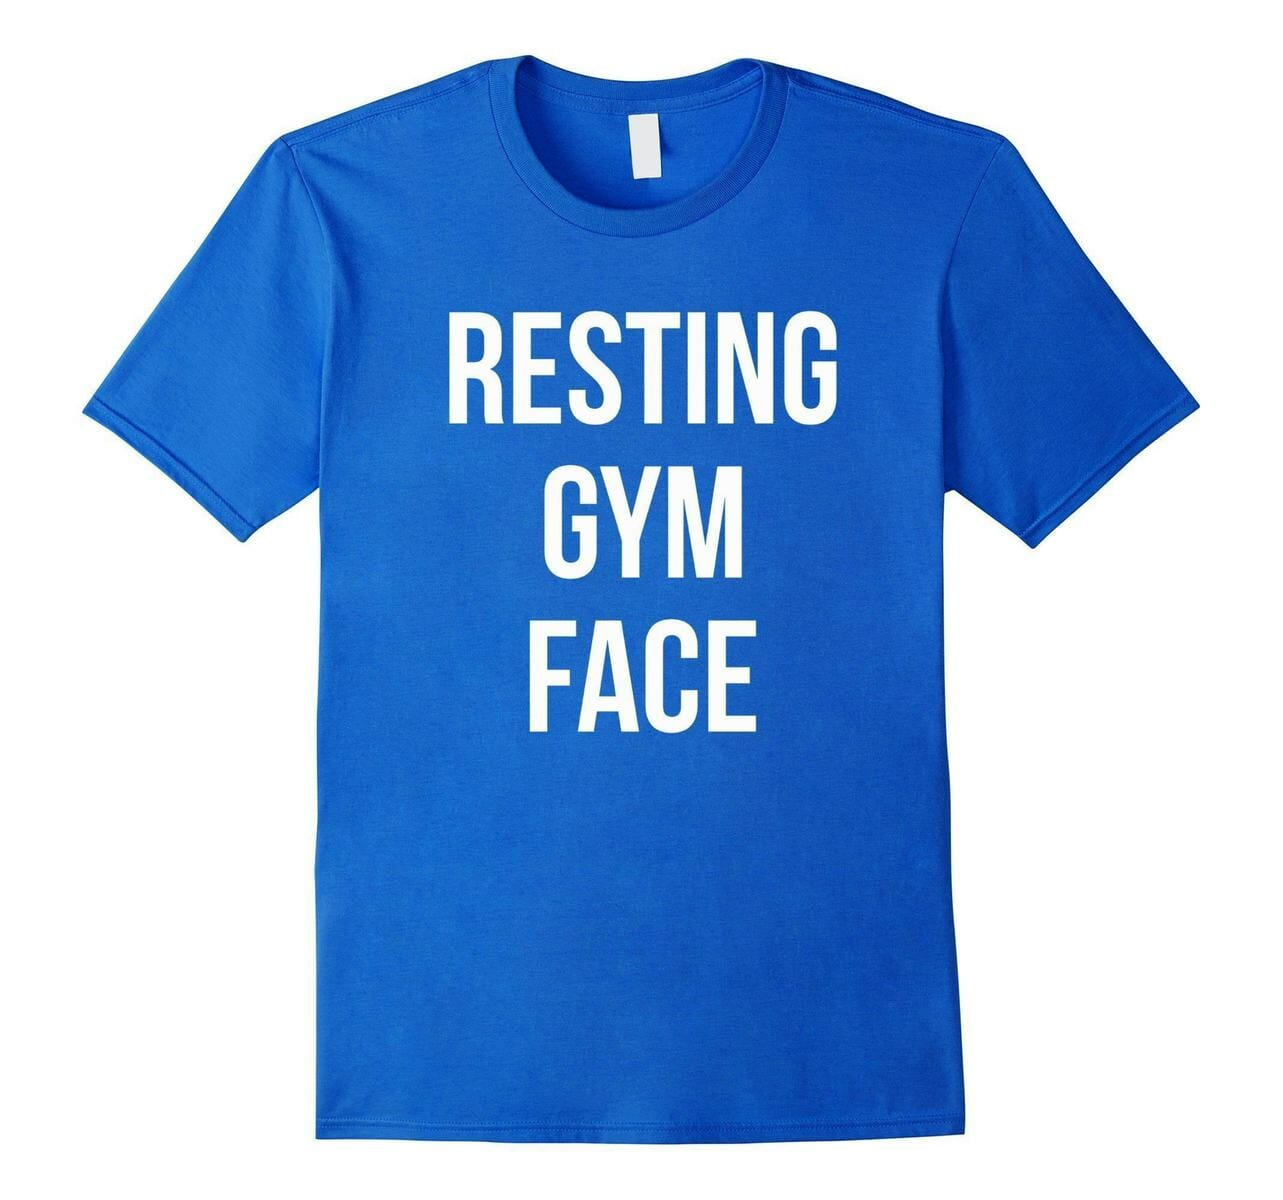 Blue T-shirt with Resting gym face sign